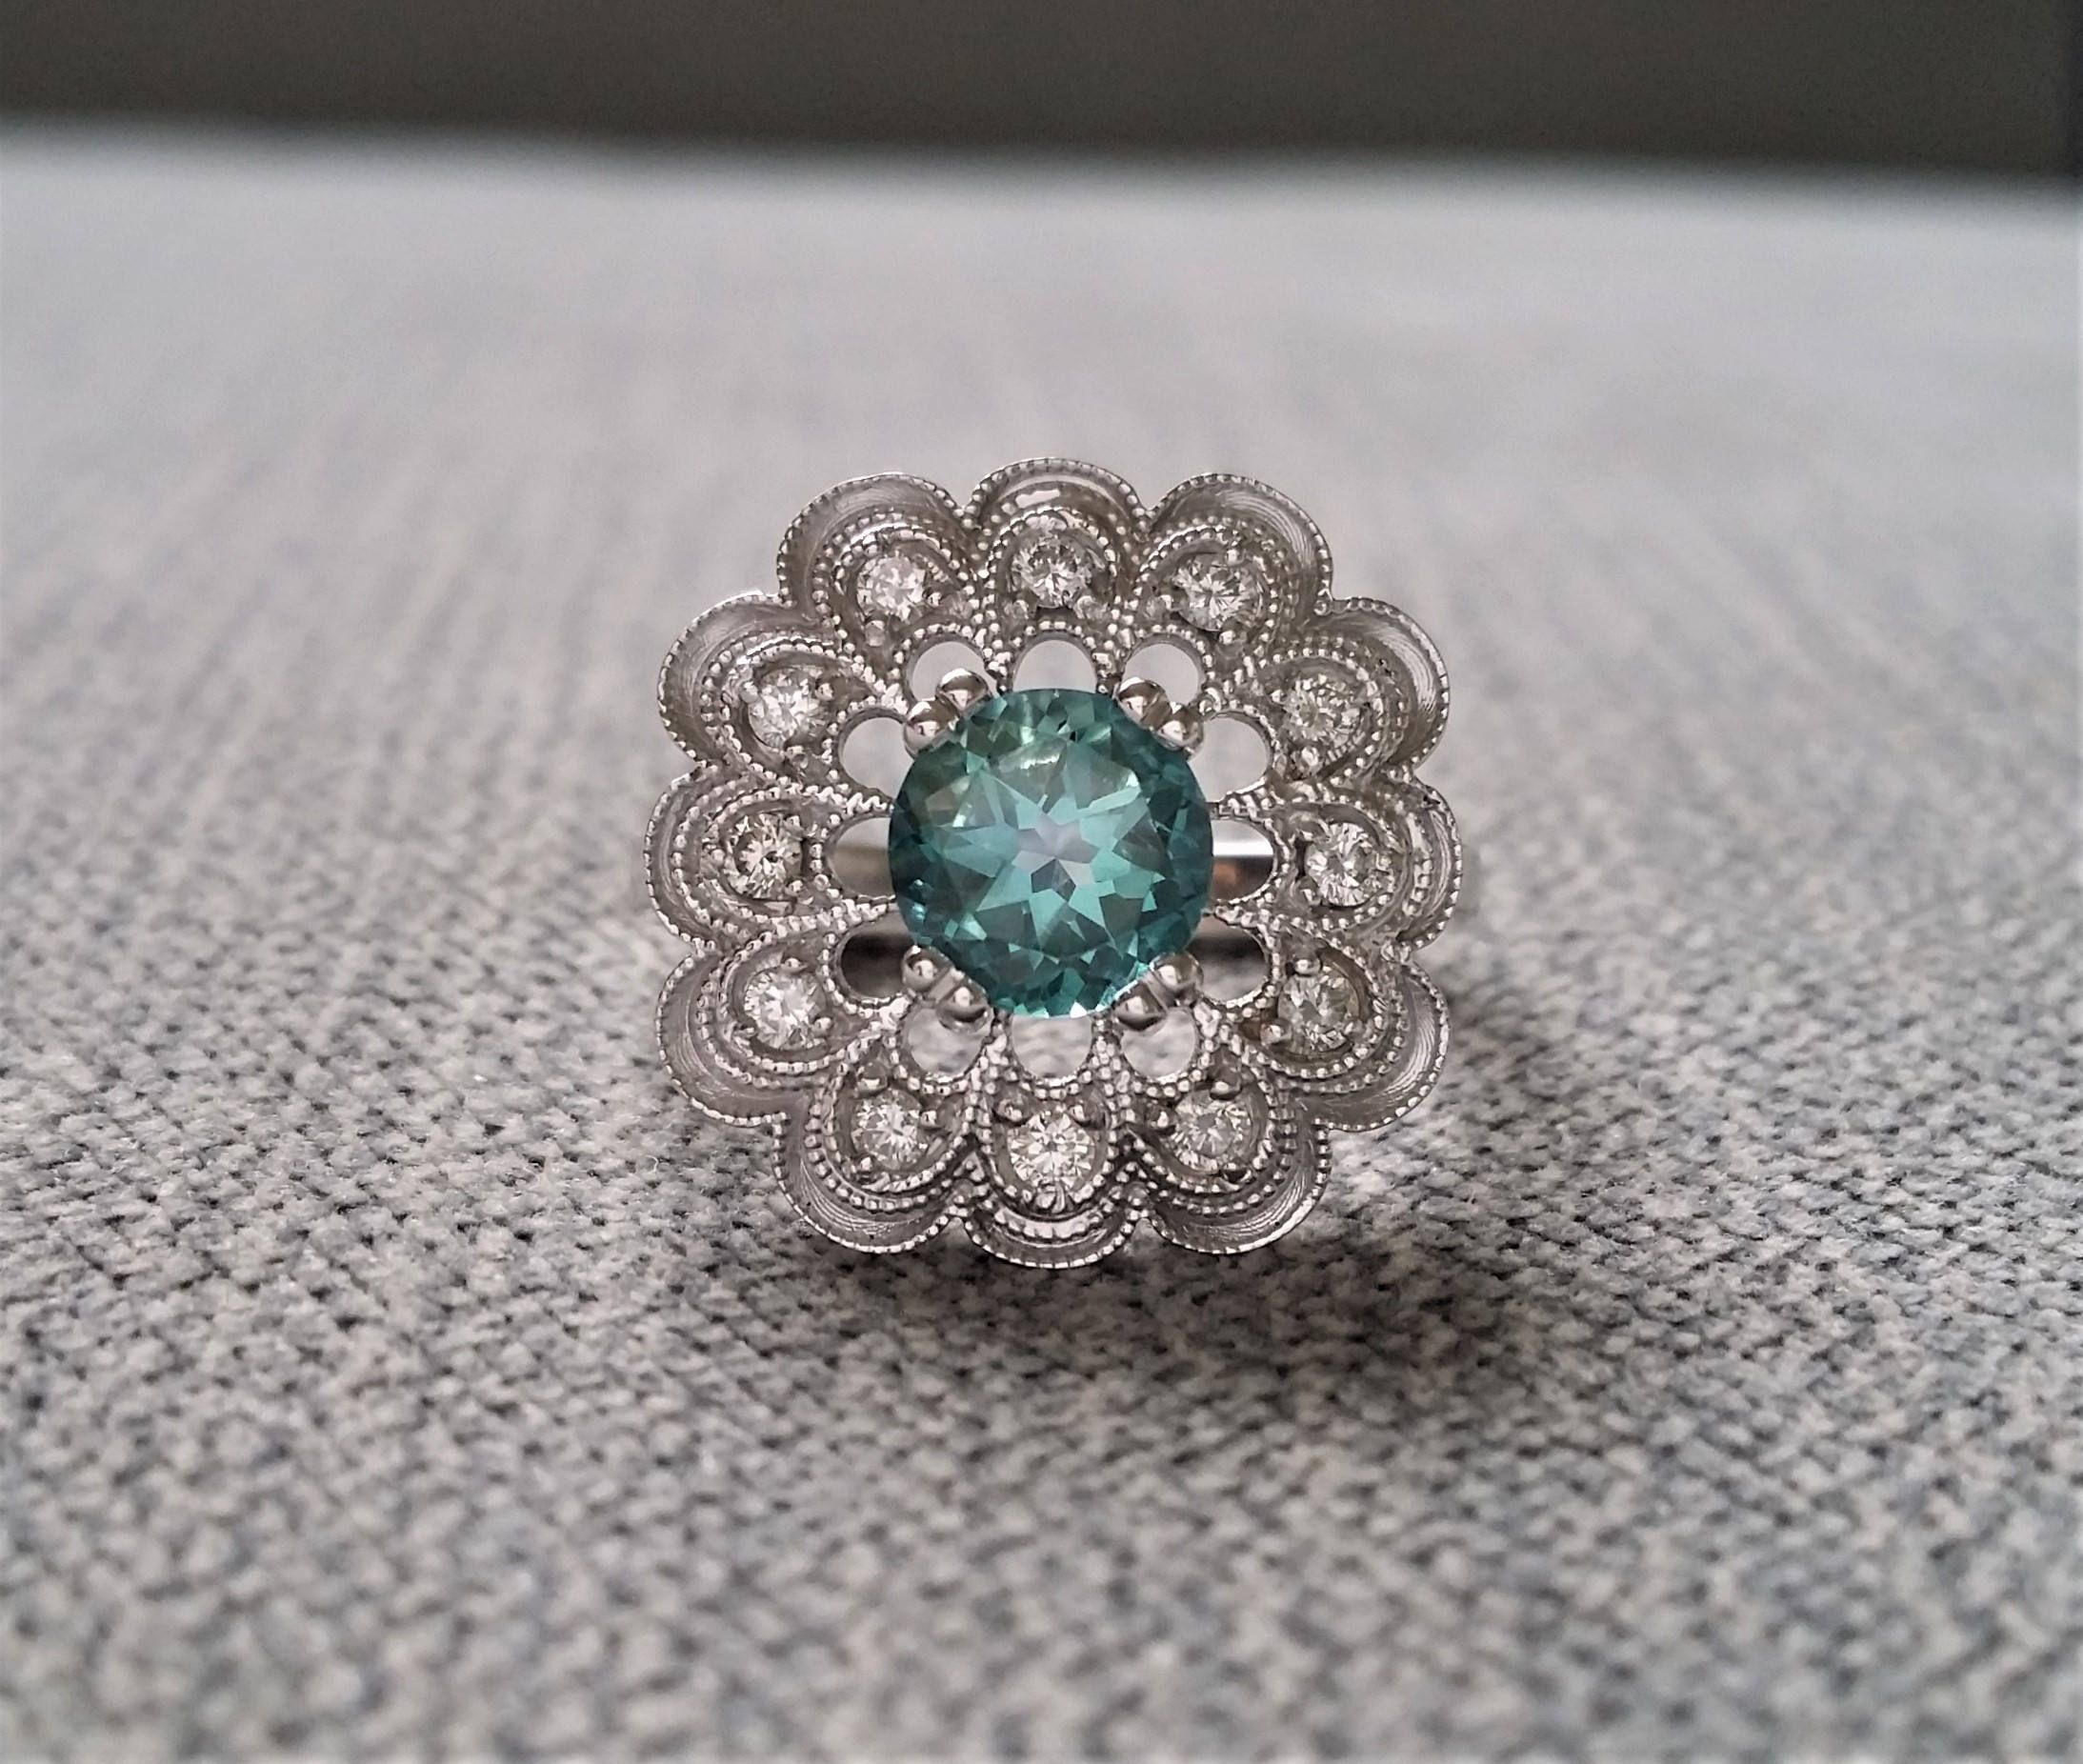 manufacturing designed rings jewellery wedding design engagement custom teal